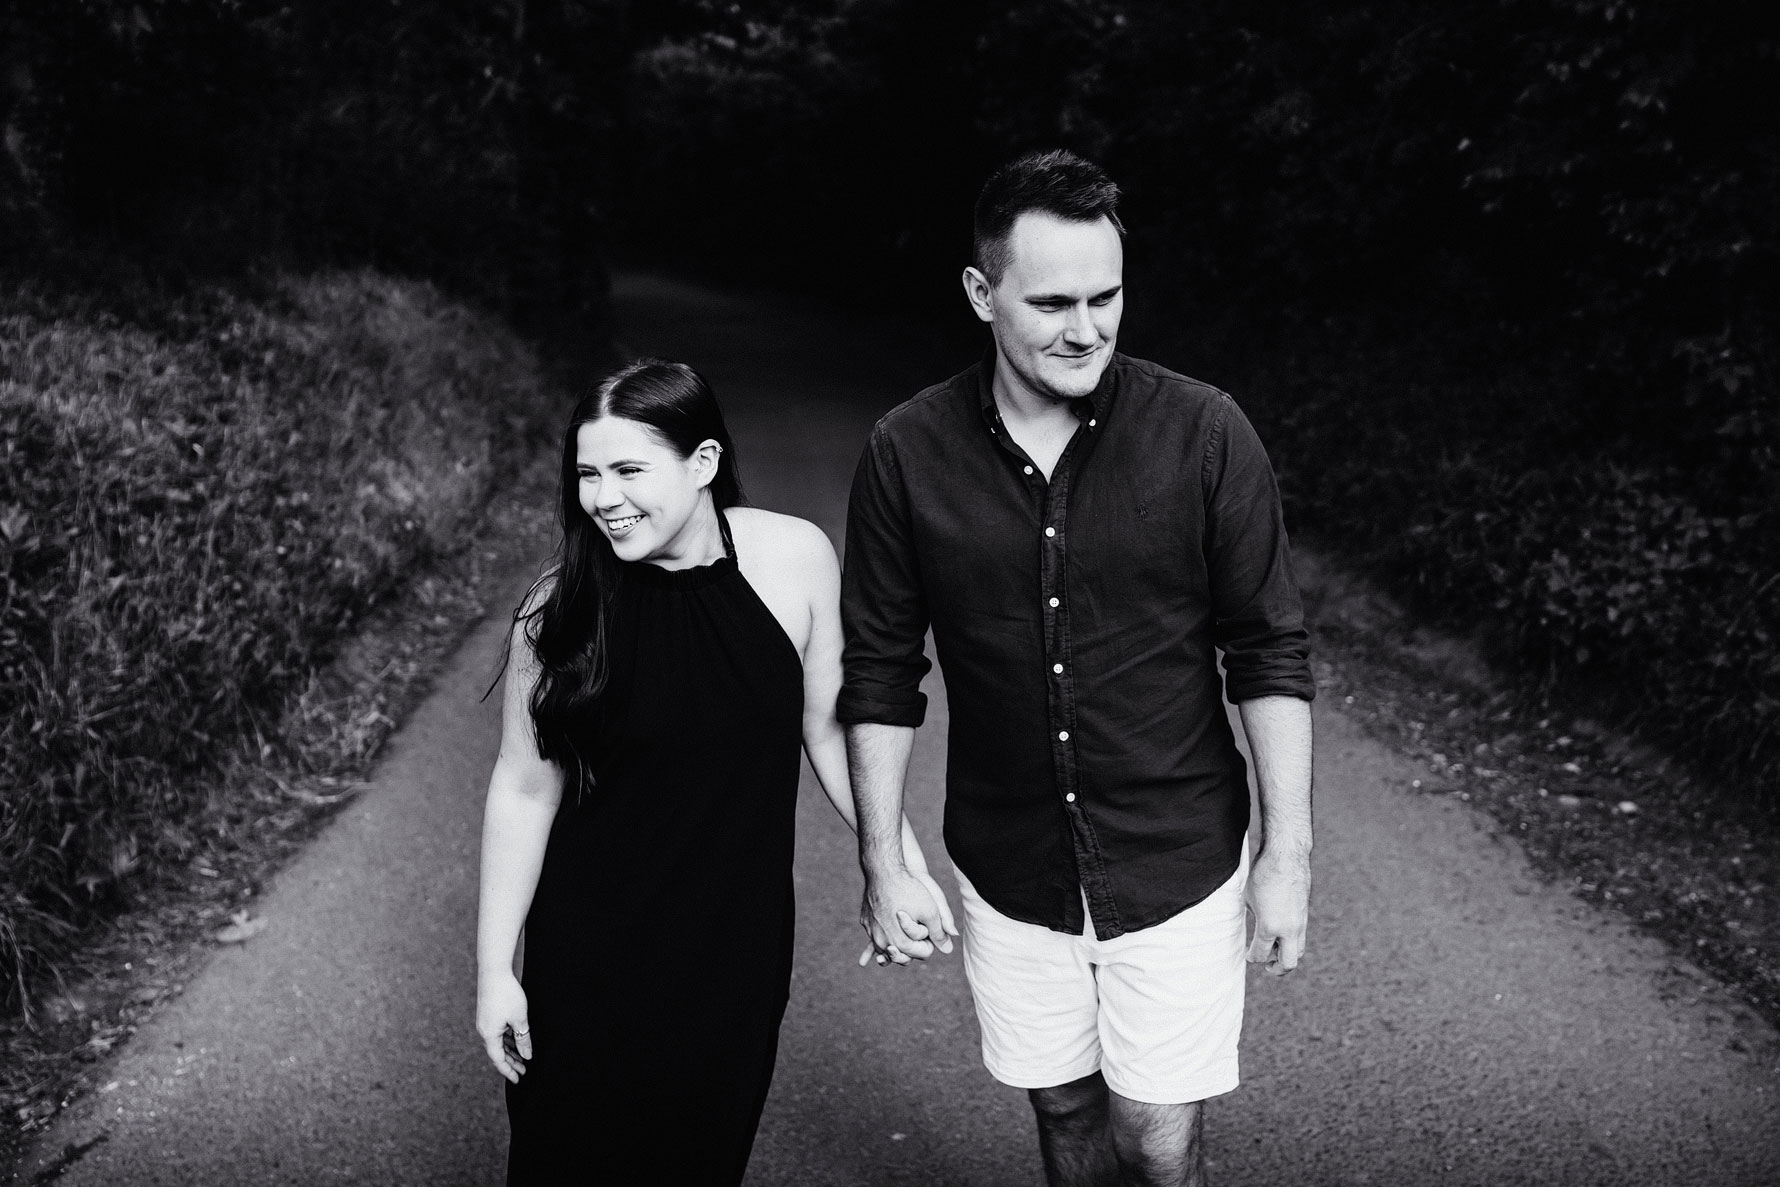 a image of a couple walking and holding hands